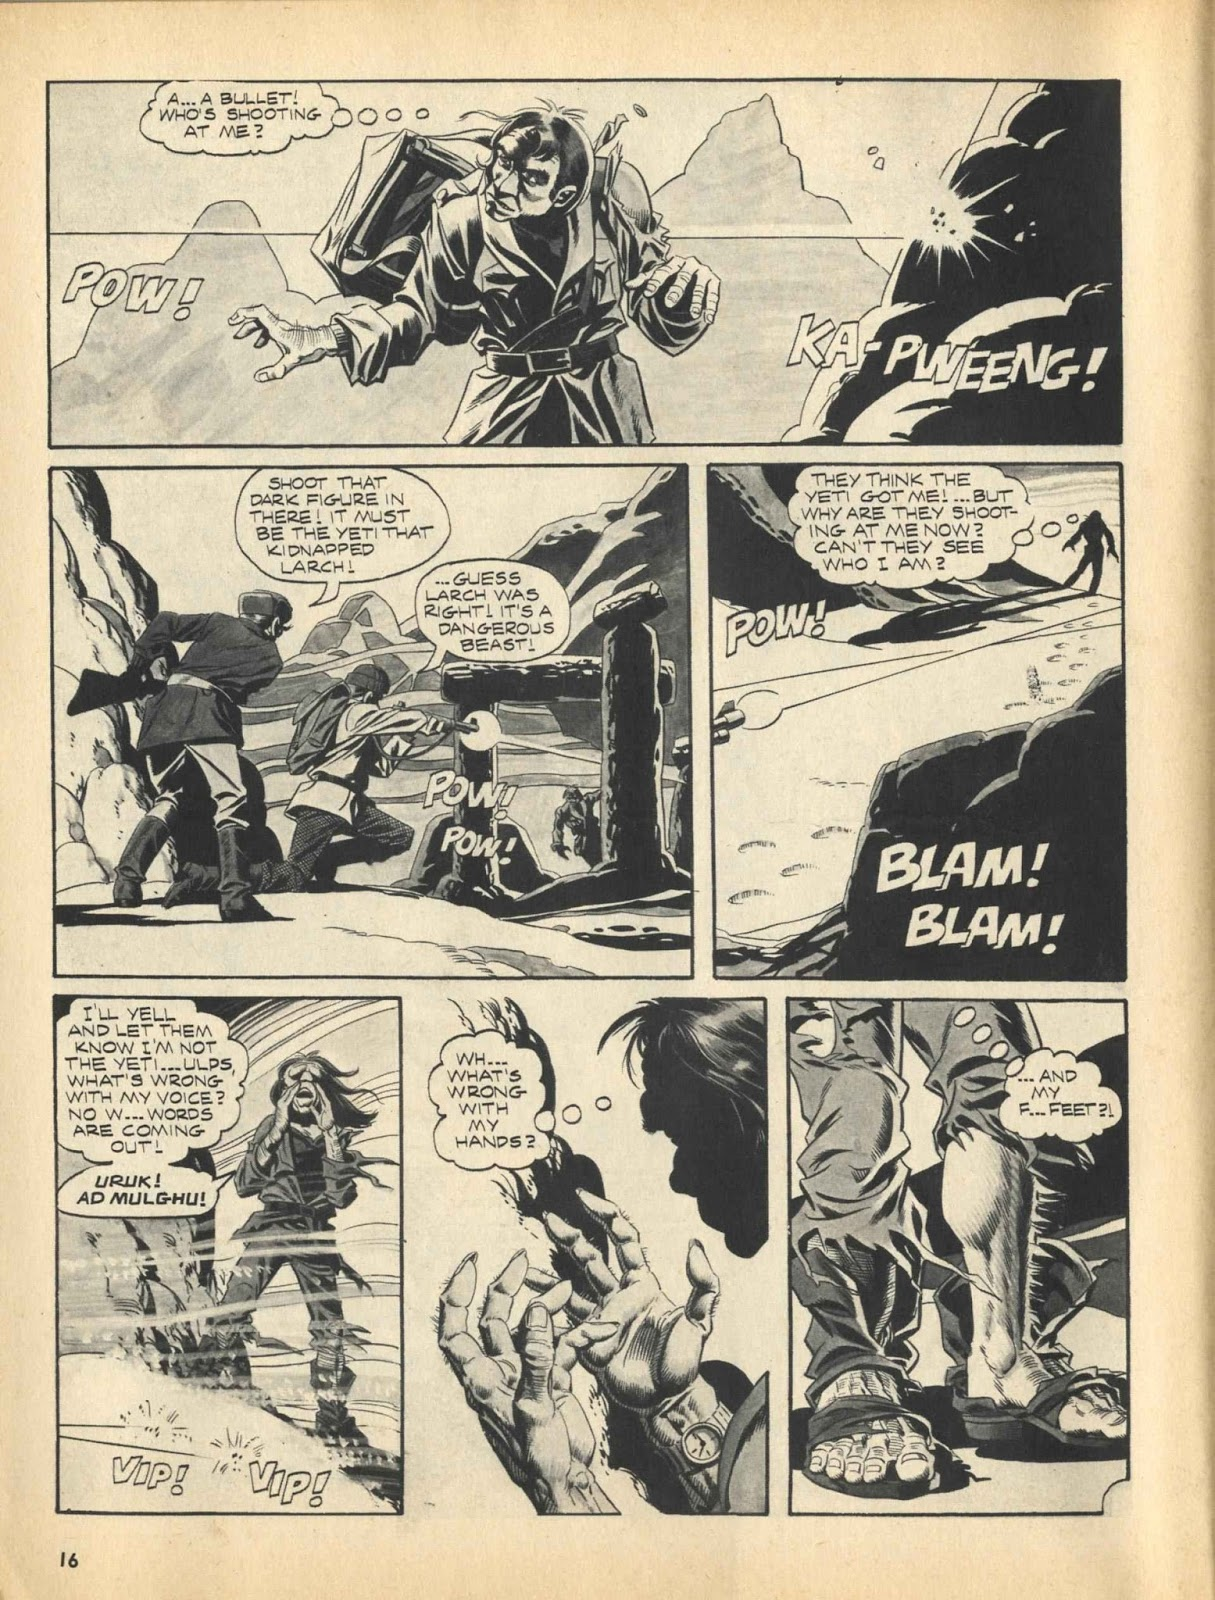 Web of Horror (1969) #3 pg16, written by Otto Binder with art from Ralph Reese.